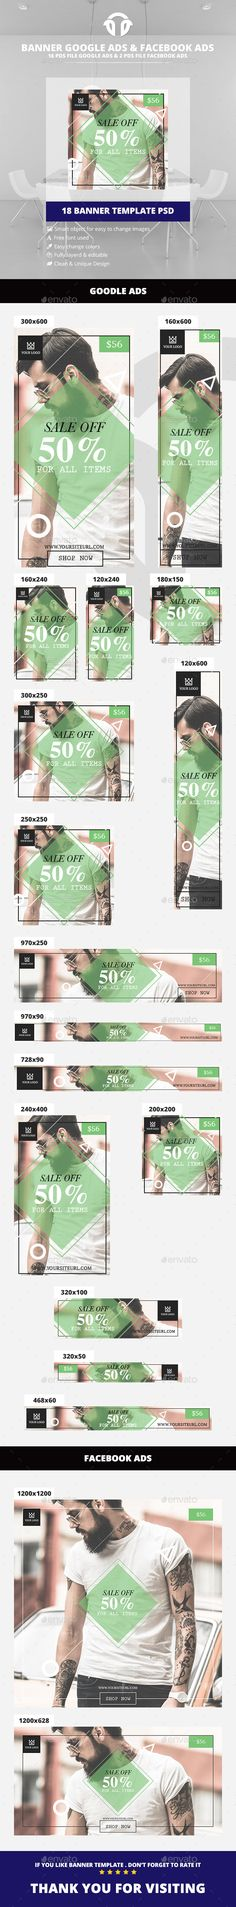 Vintage Fashion Ads Web Banners Template PSD #design Download: http://graphicriver.net/item/vintage-fashion-ads/13353546?ref=ksioks